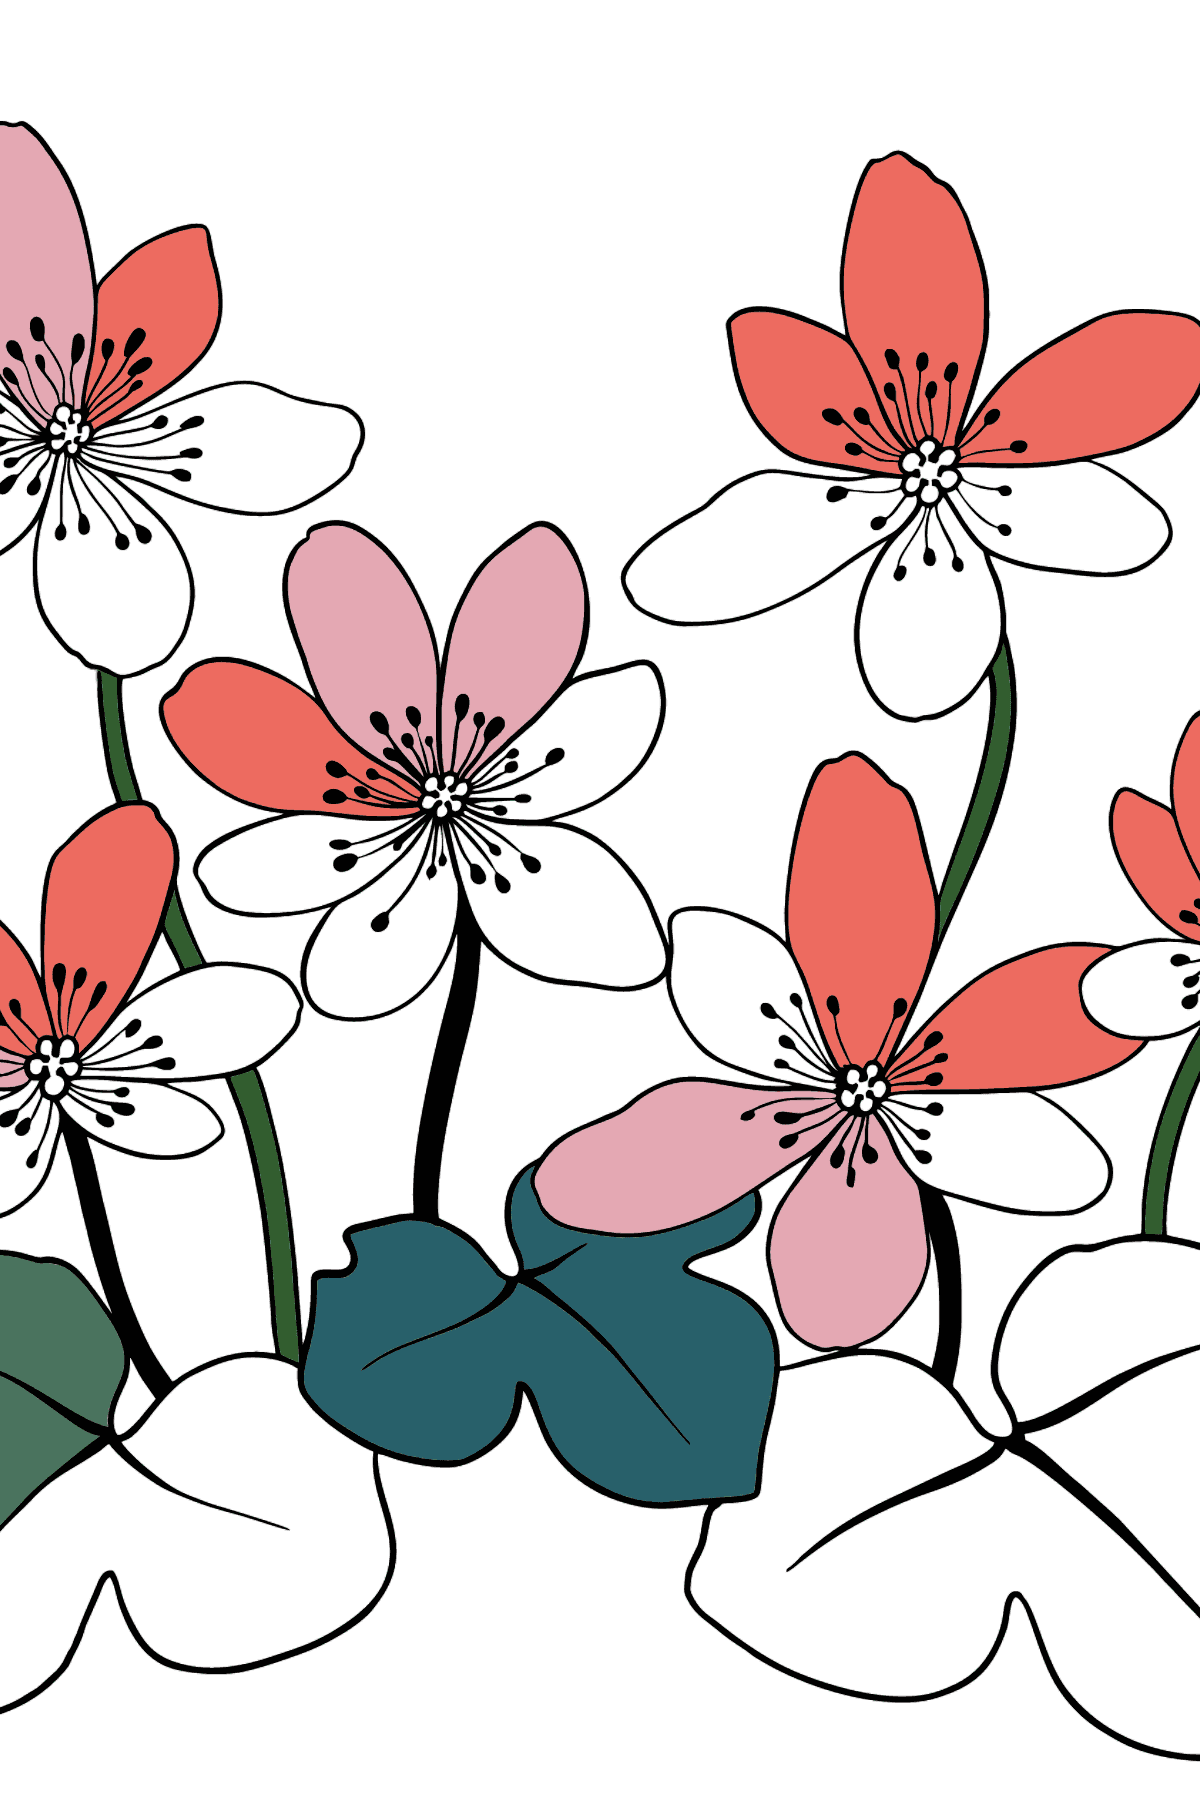 Flower Coloring Page - Hepatica - Coloring Pages for Kids